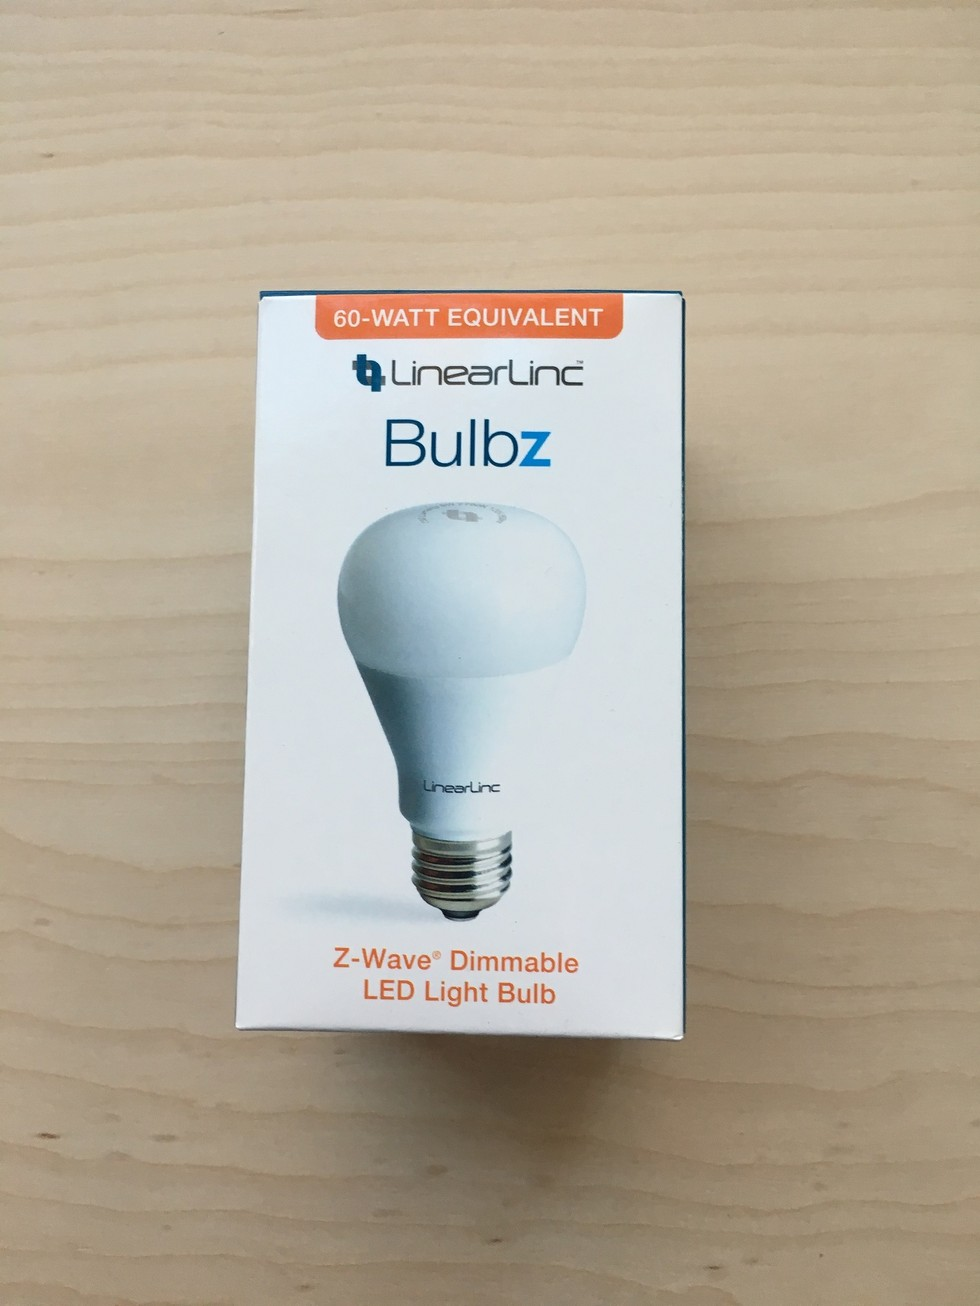 LinearLinc LED Dimmable Z-Wave Light Bulb